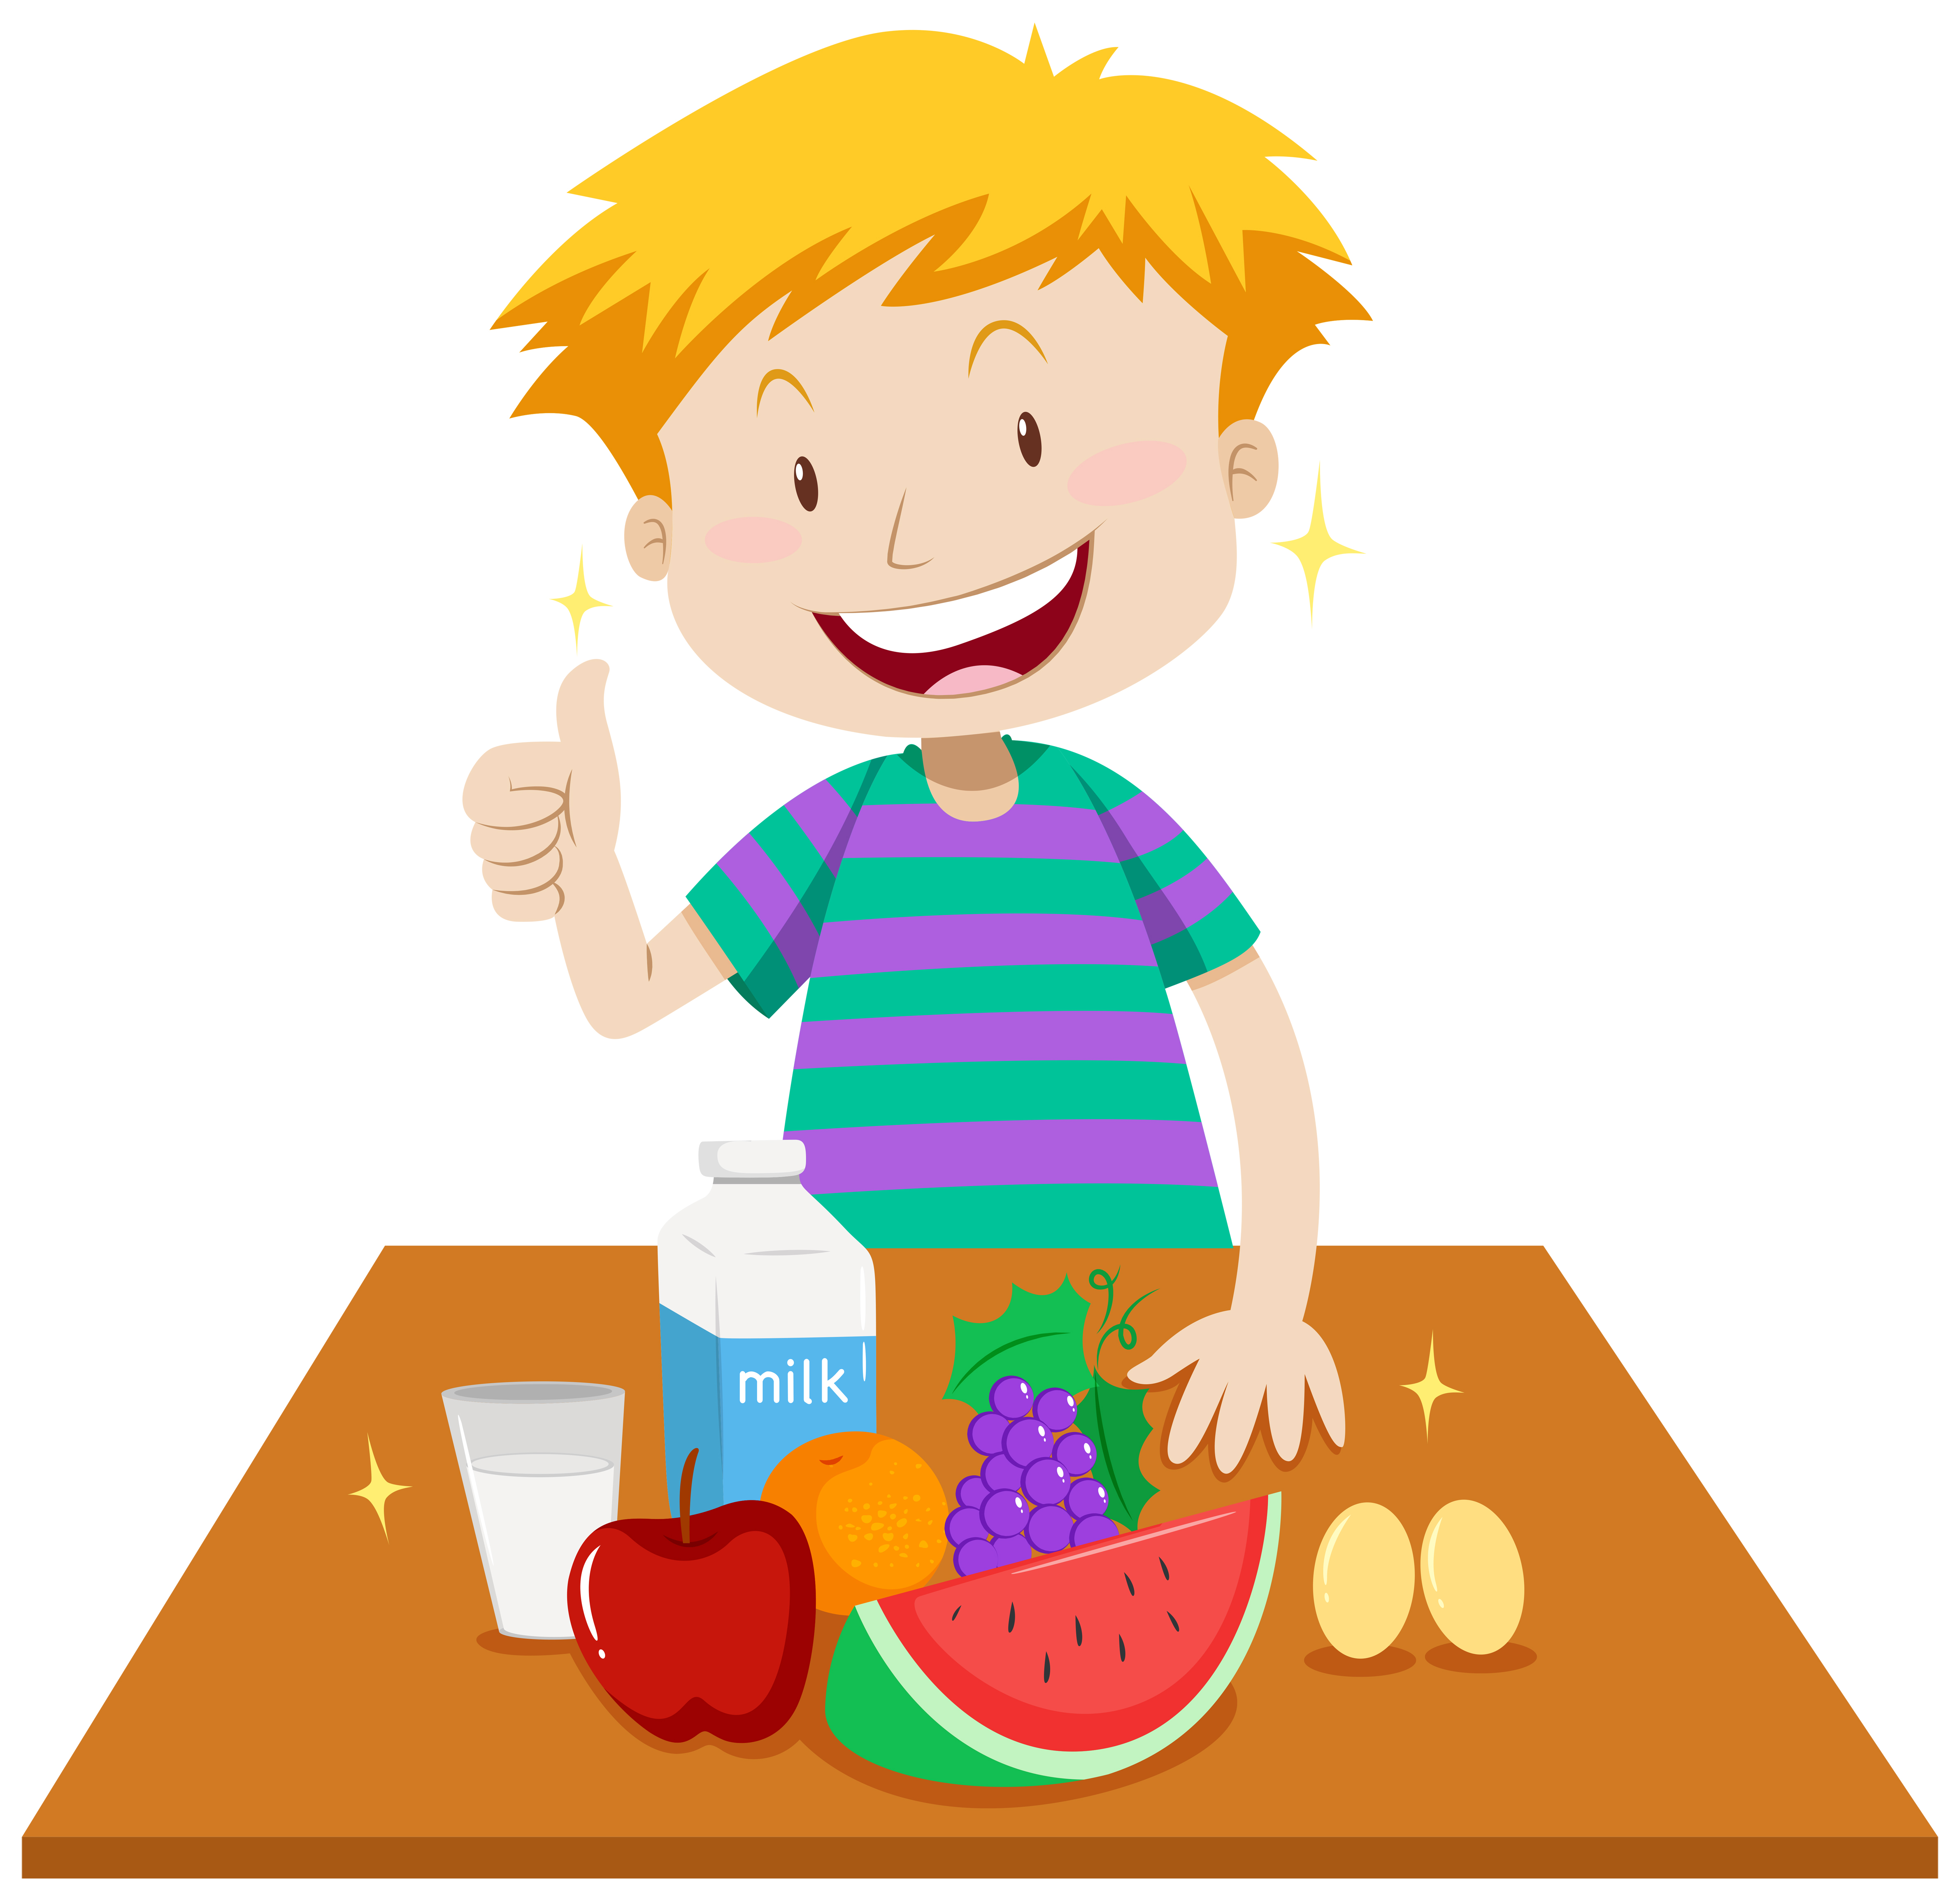 Little Boy And Healthy Food On Table Download Free Vectors Clipart Graphics Vector Art